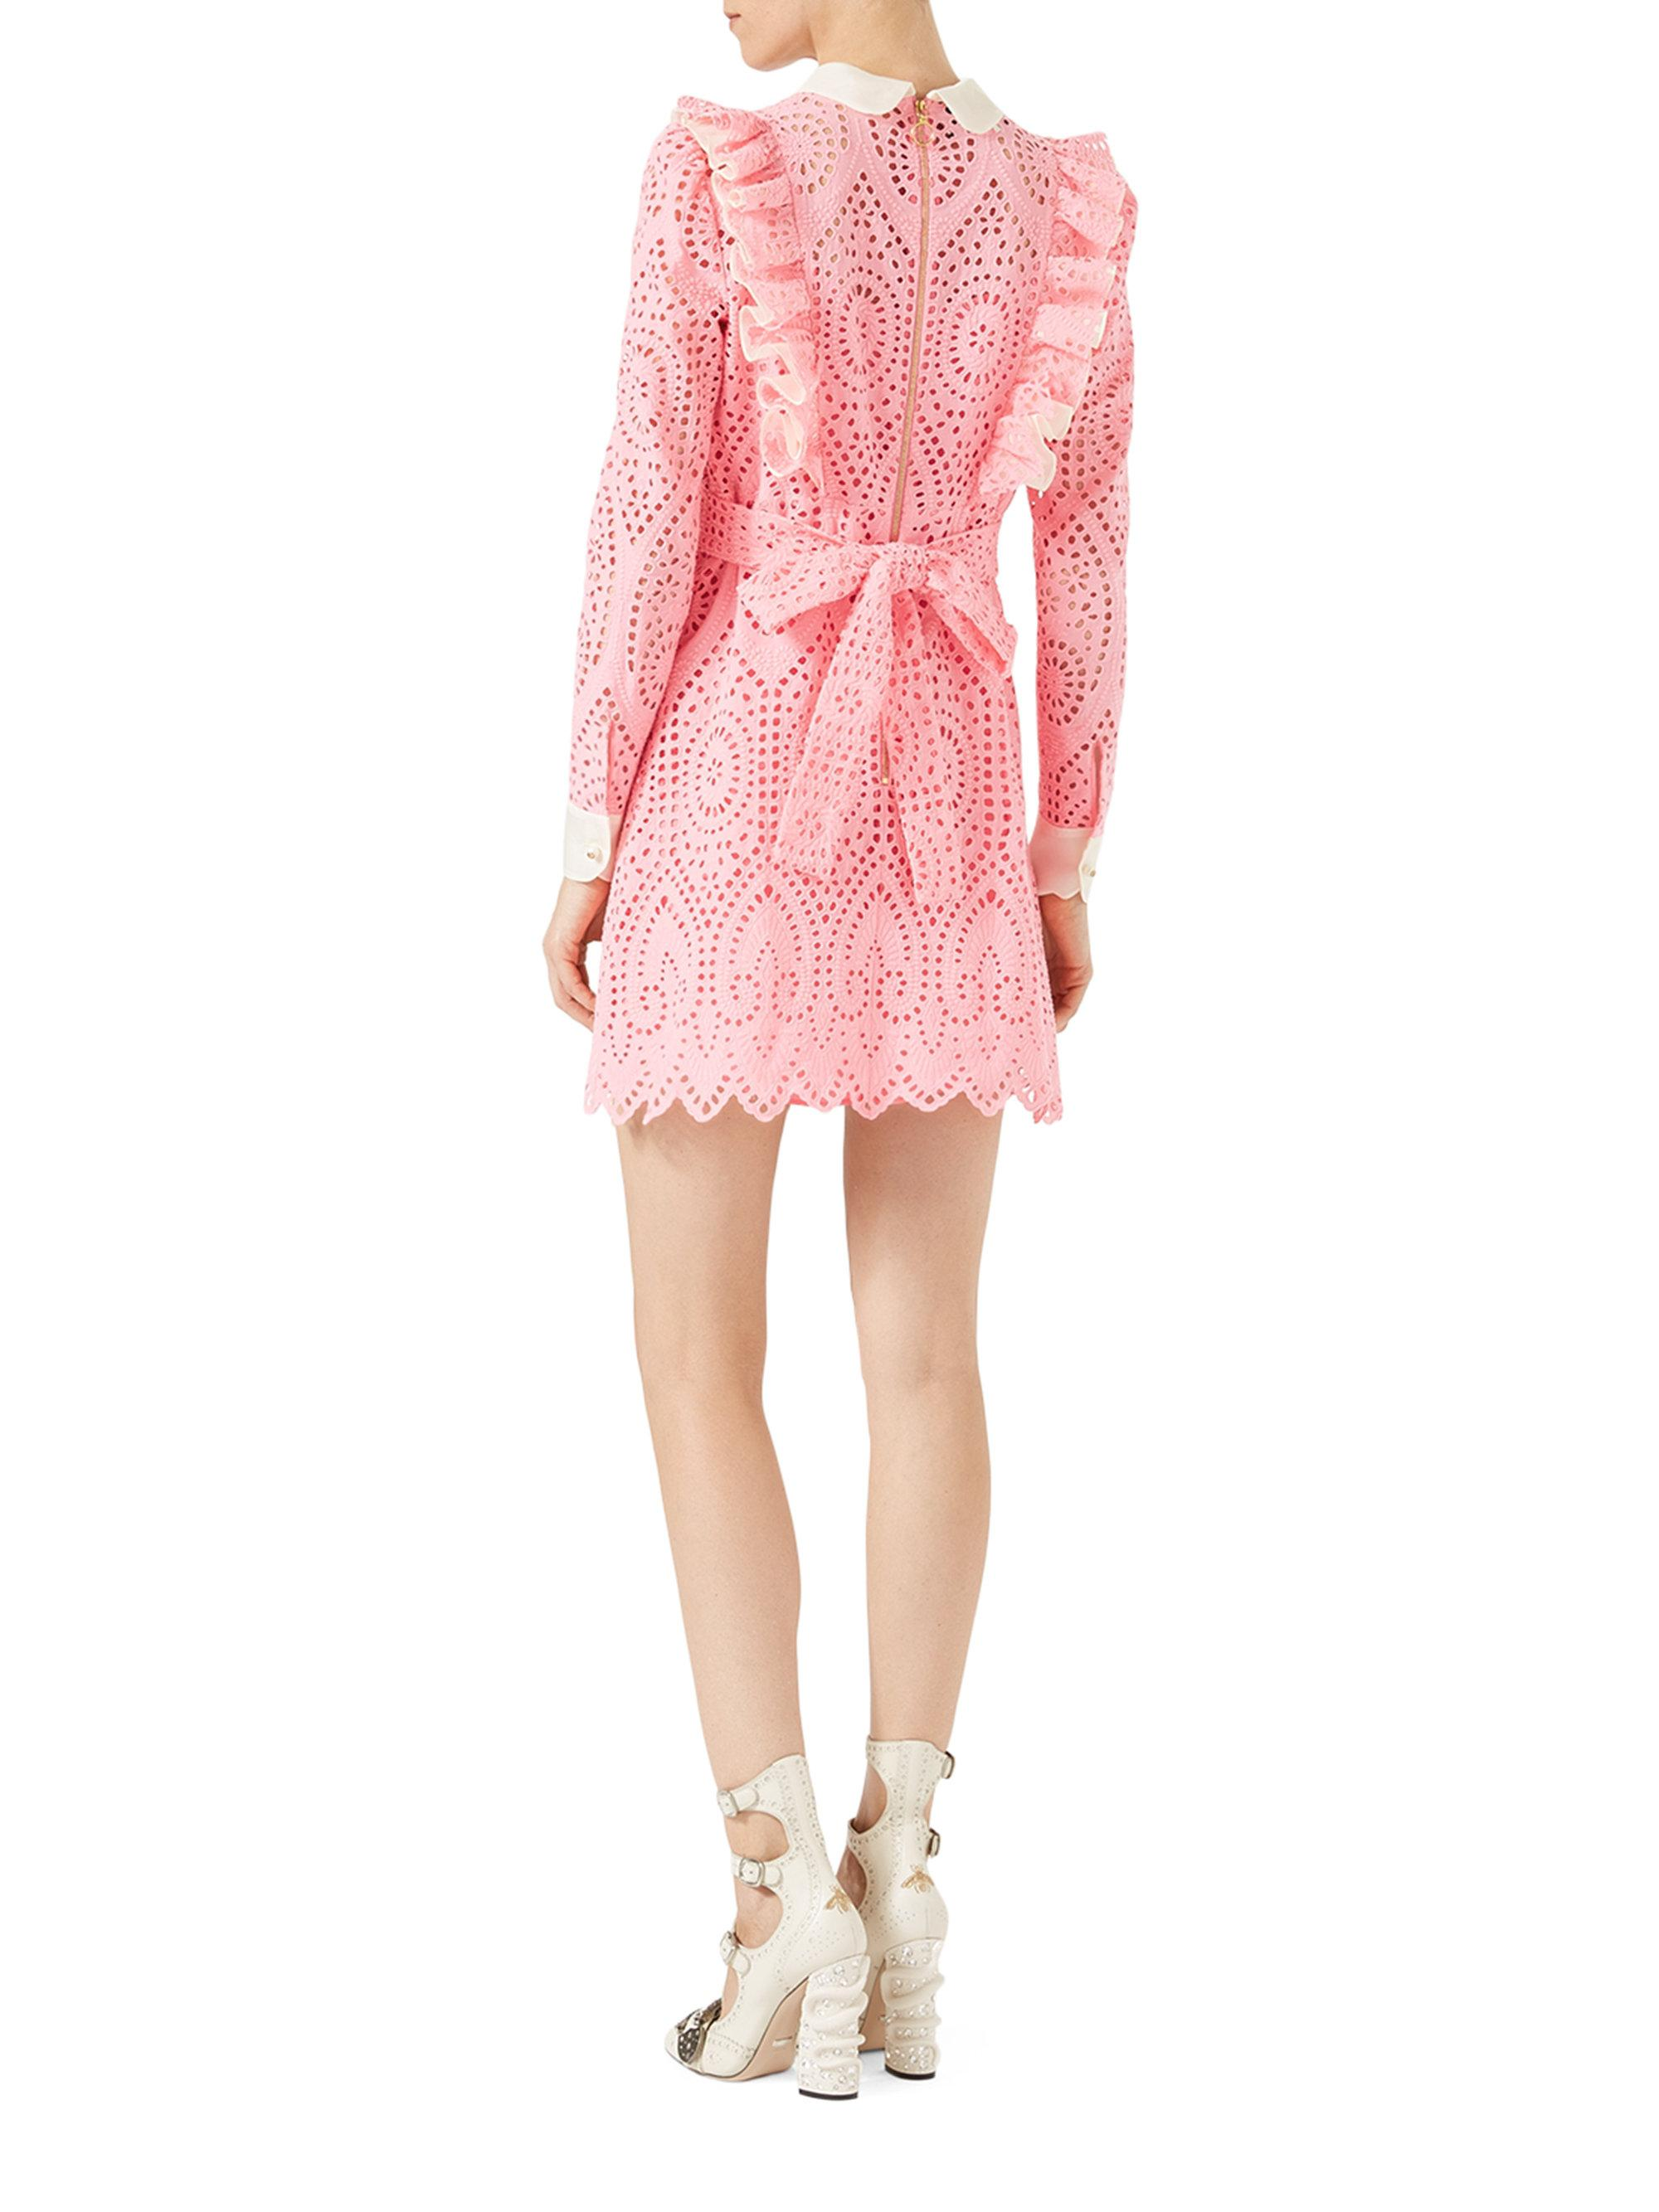 dc61566ffac Gucci Broderie Anglaise Cotton Dress in Pink - Lyst